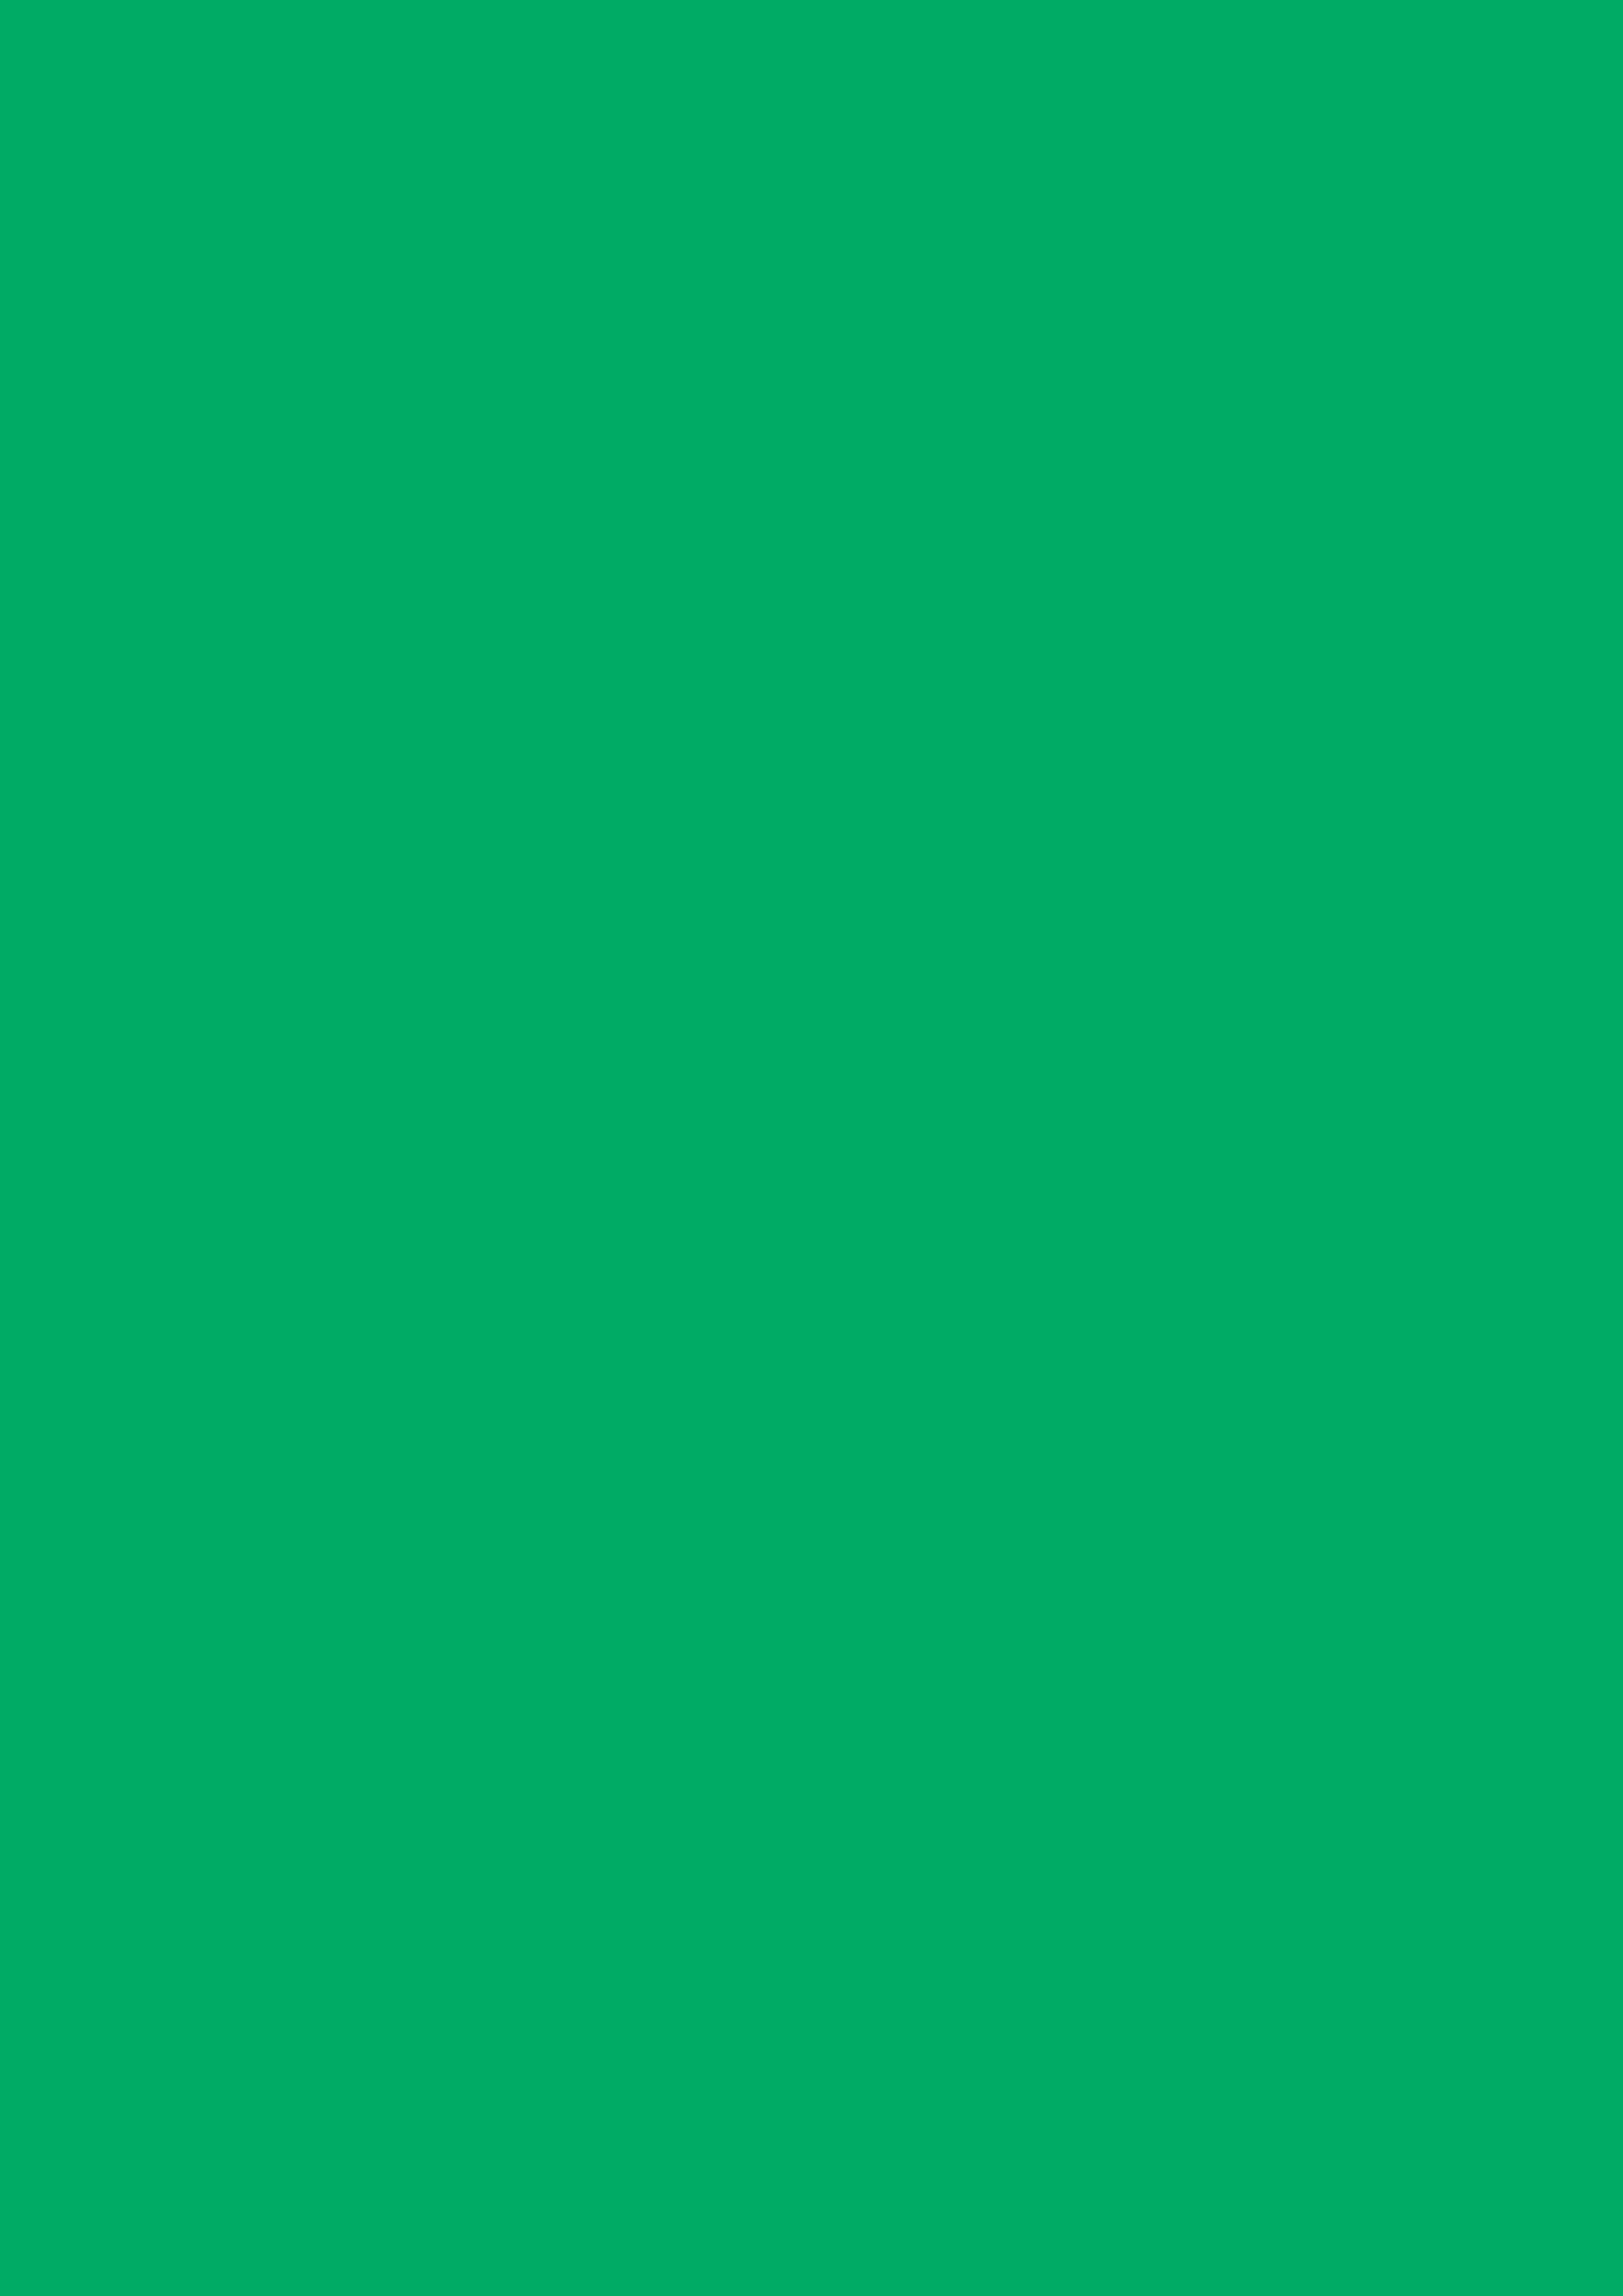 2480x3508 GO Green Solid Color Background